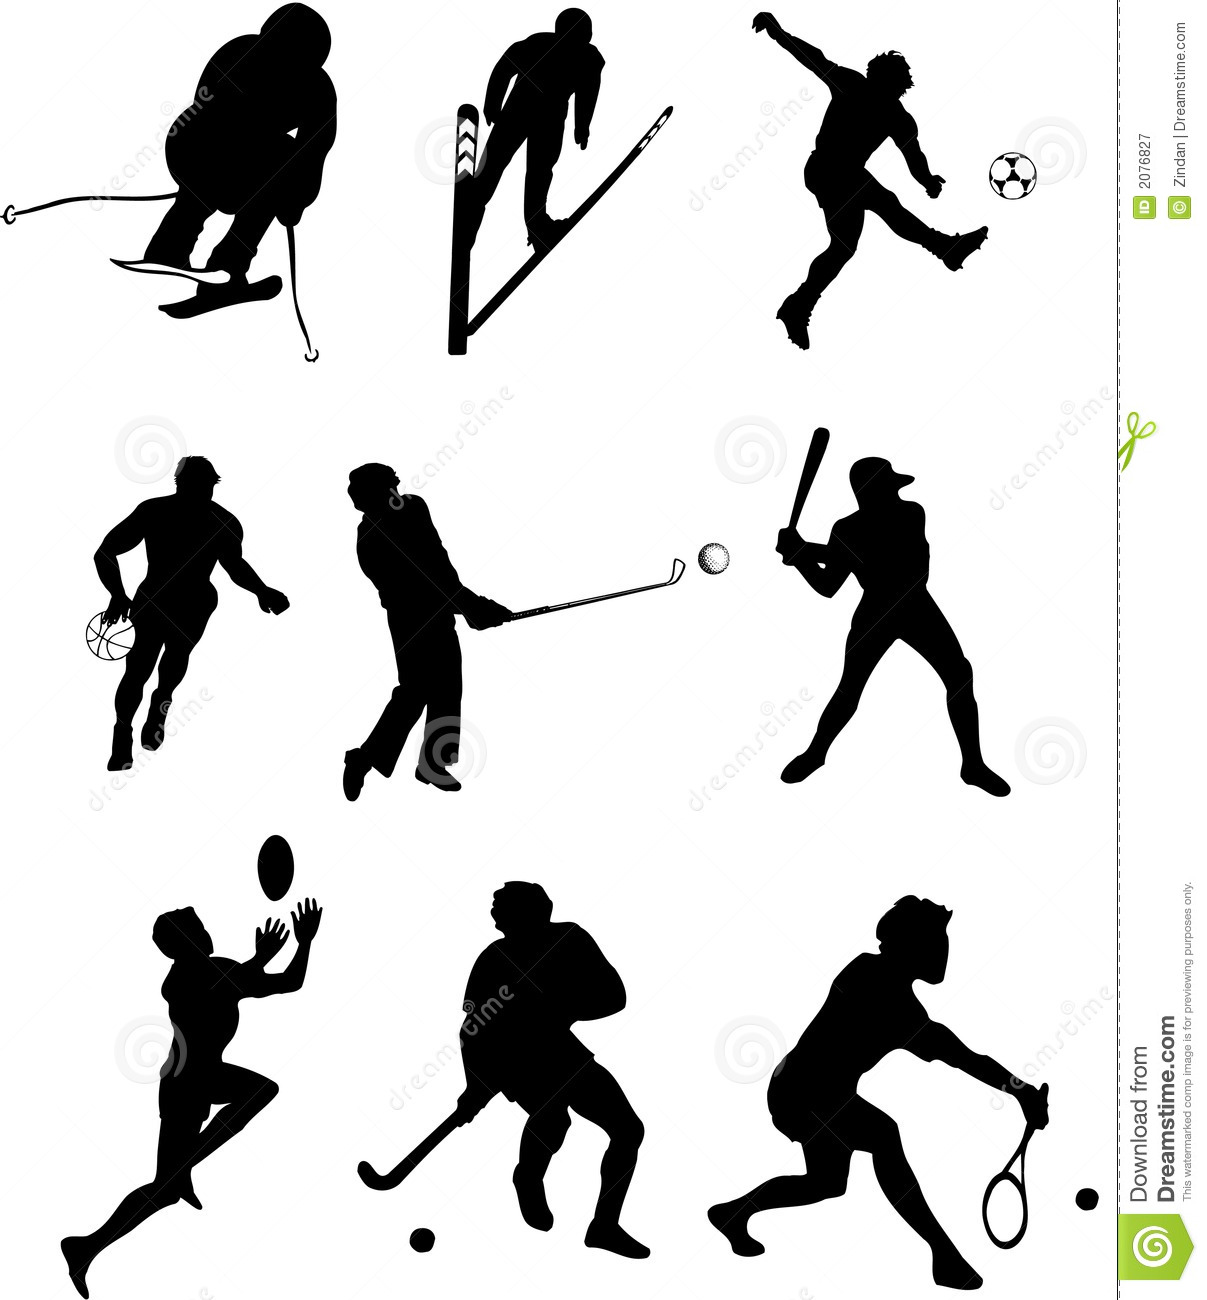 sports types silhouettes stock vector image of tennis playing basketball silhouette vector basketball player silhouette vector